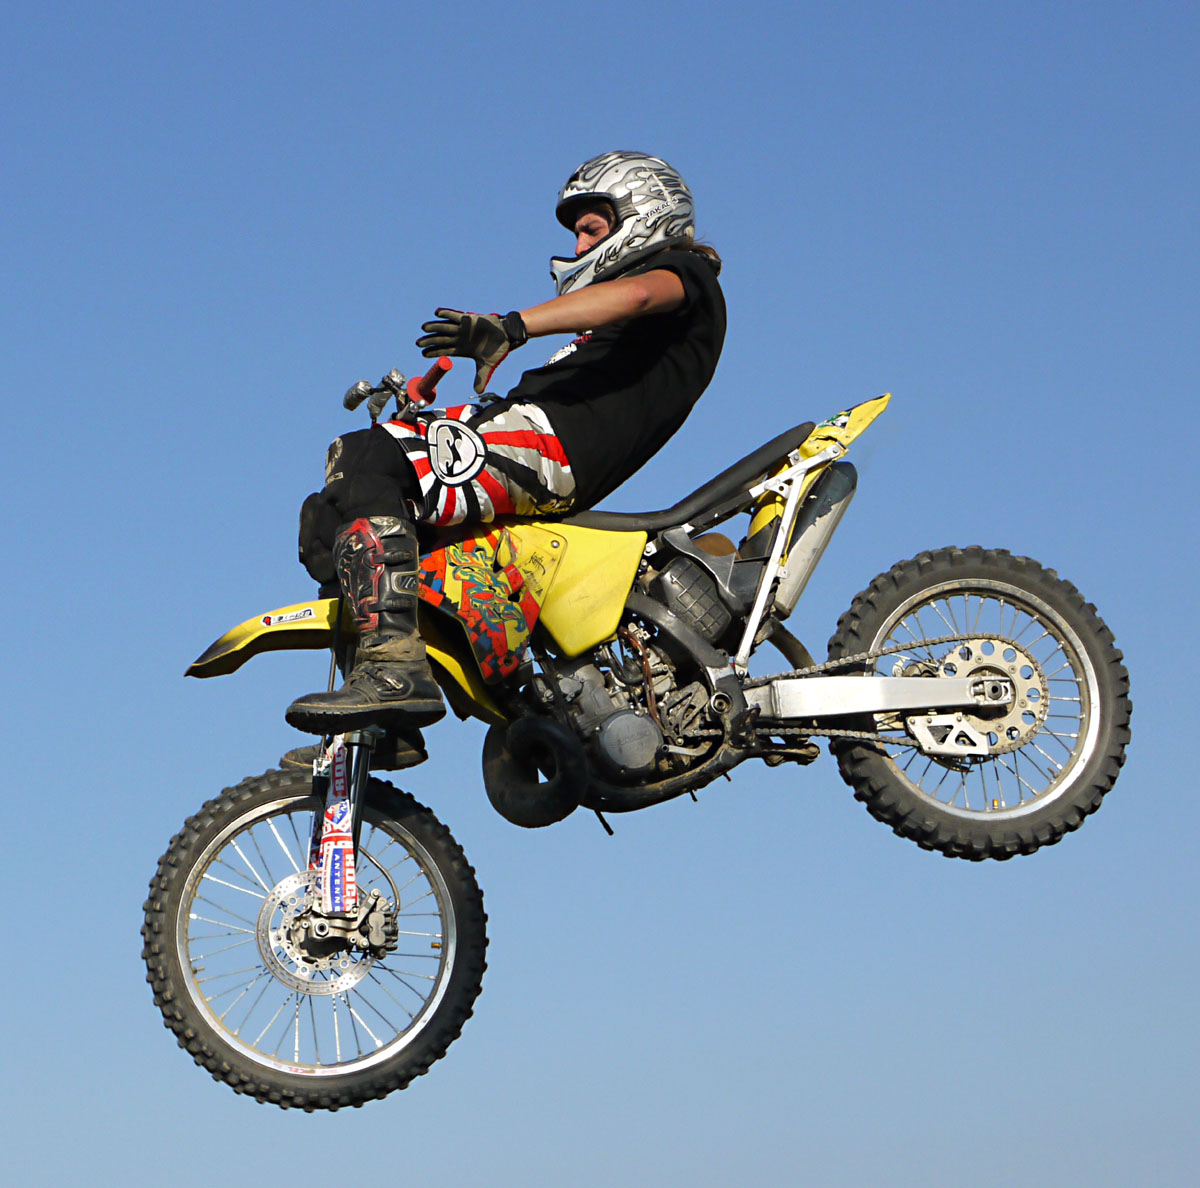 FMX: Freestyle Motocross in my home | Adventure Rider